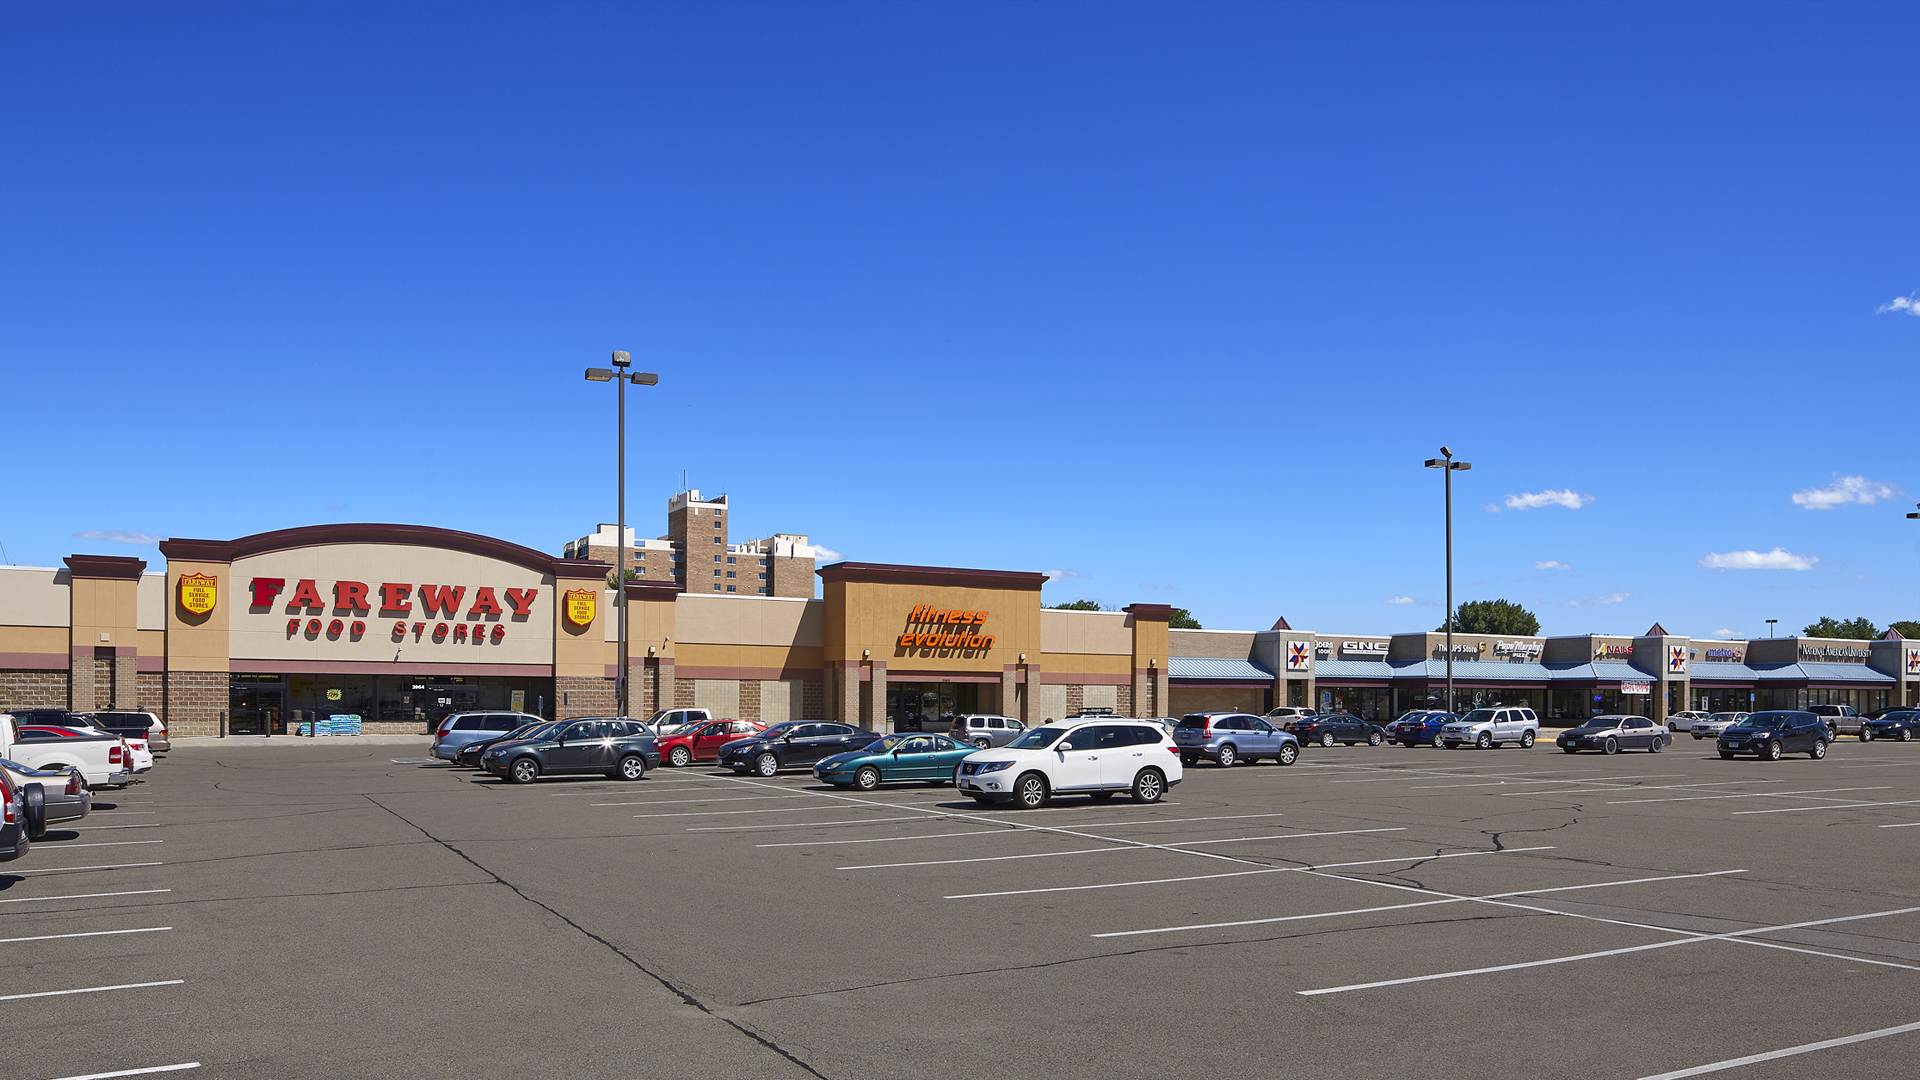 Maplewood Square Retail Shopping Center Rochester MN exterior view featuring Fareway Food Stores